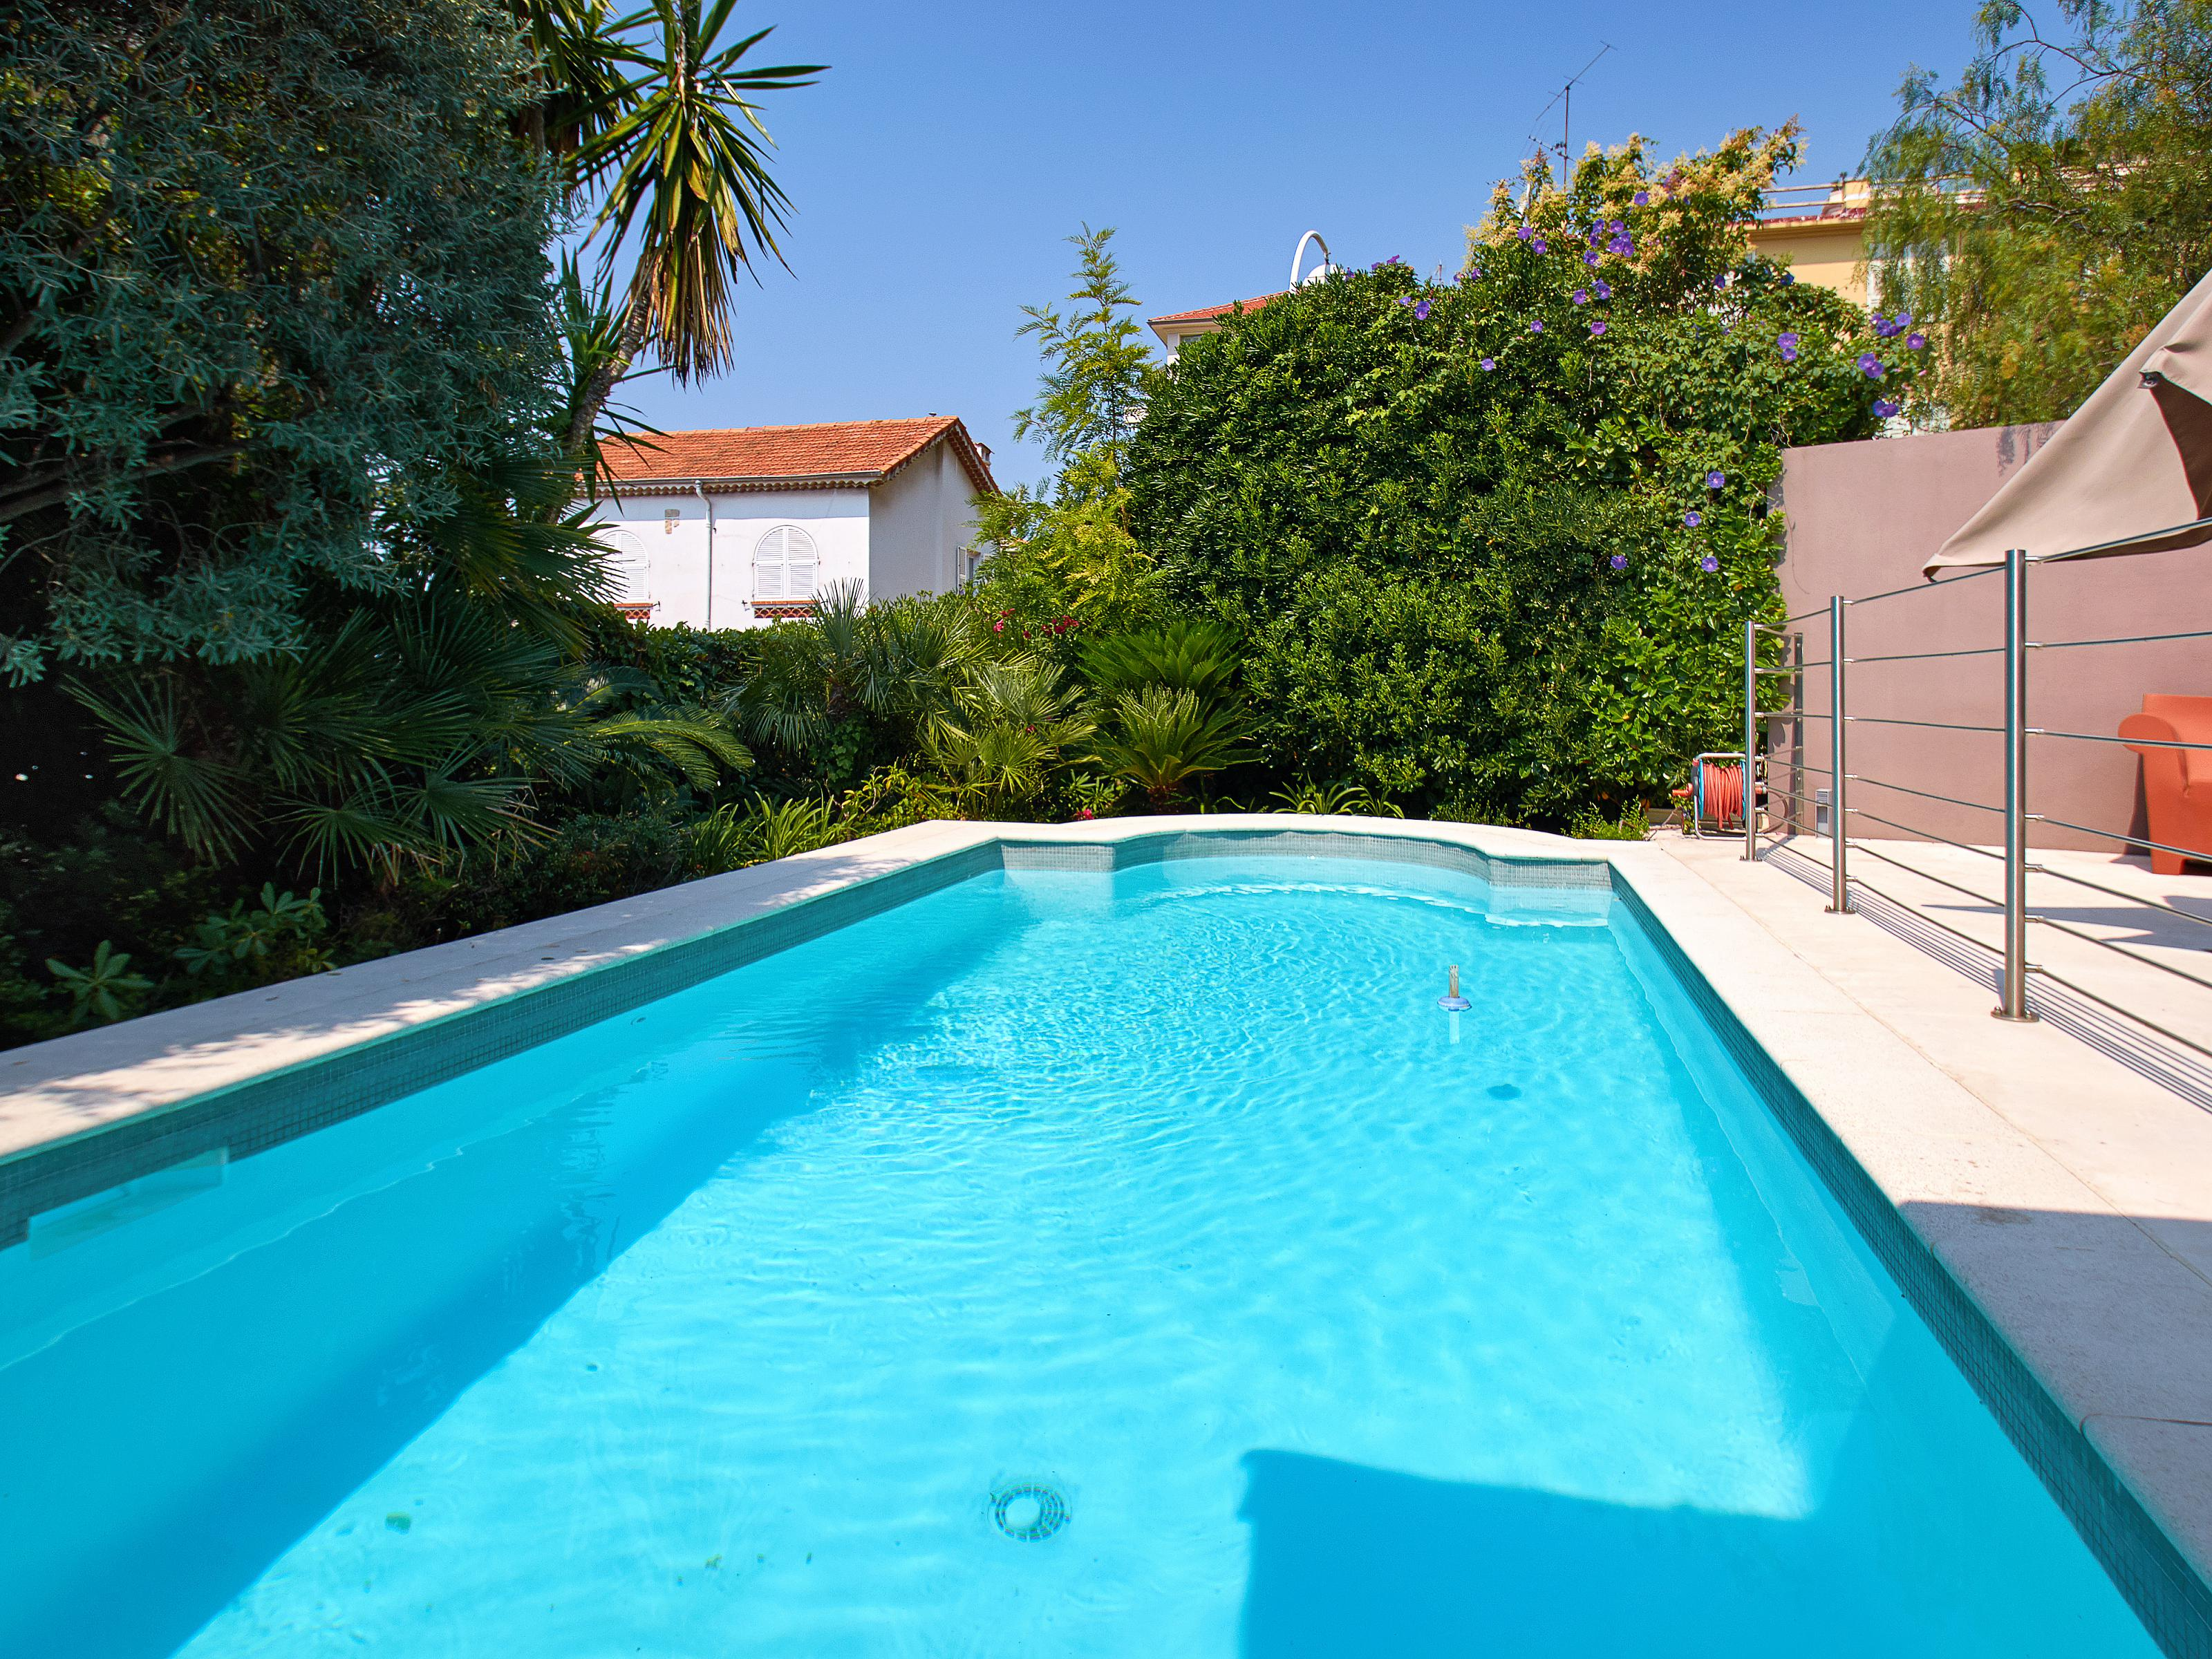 Single Family Home for Sale at Cap de Nice - Beautiful Contemporary villa walking distance to the sea Nice, Provence-Alpes-Cote D'Azur 06300 France